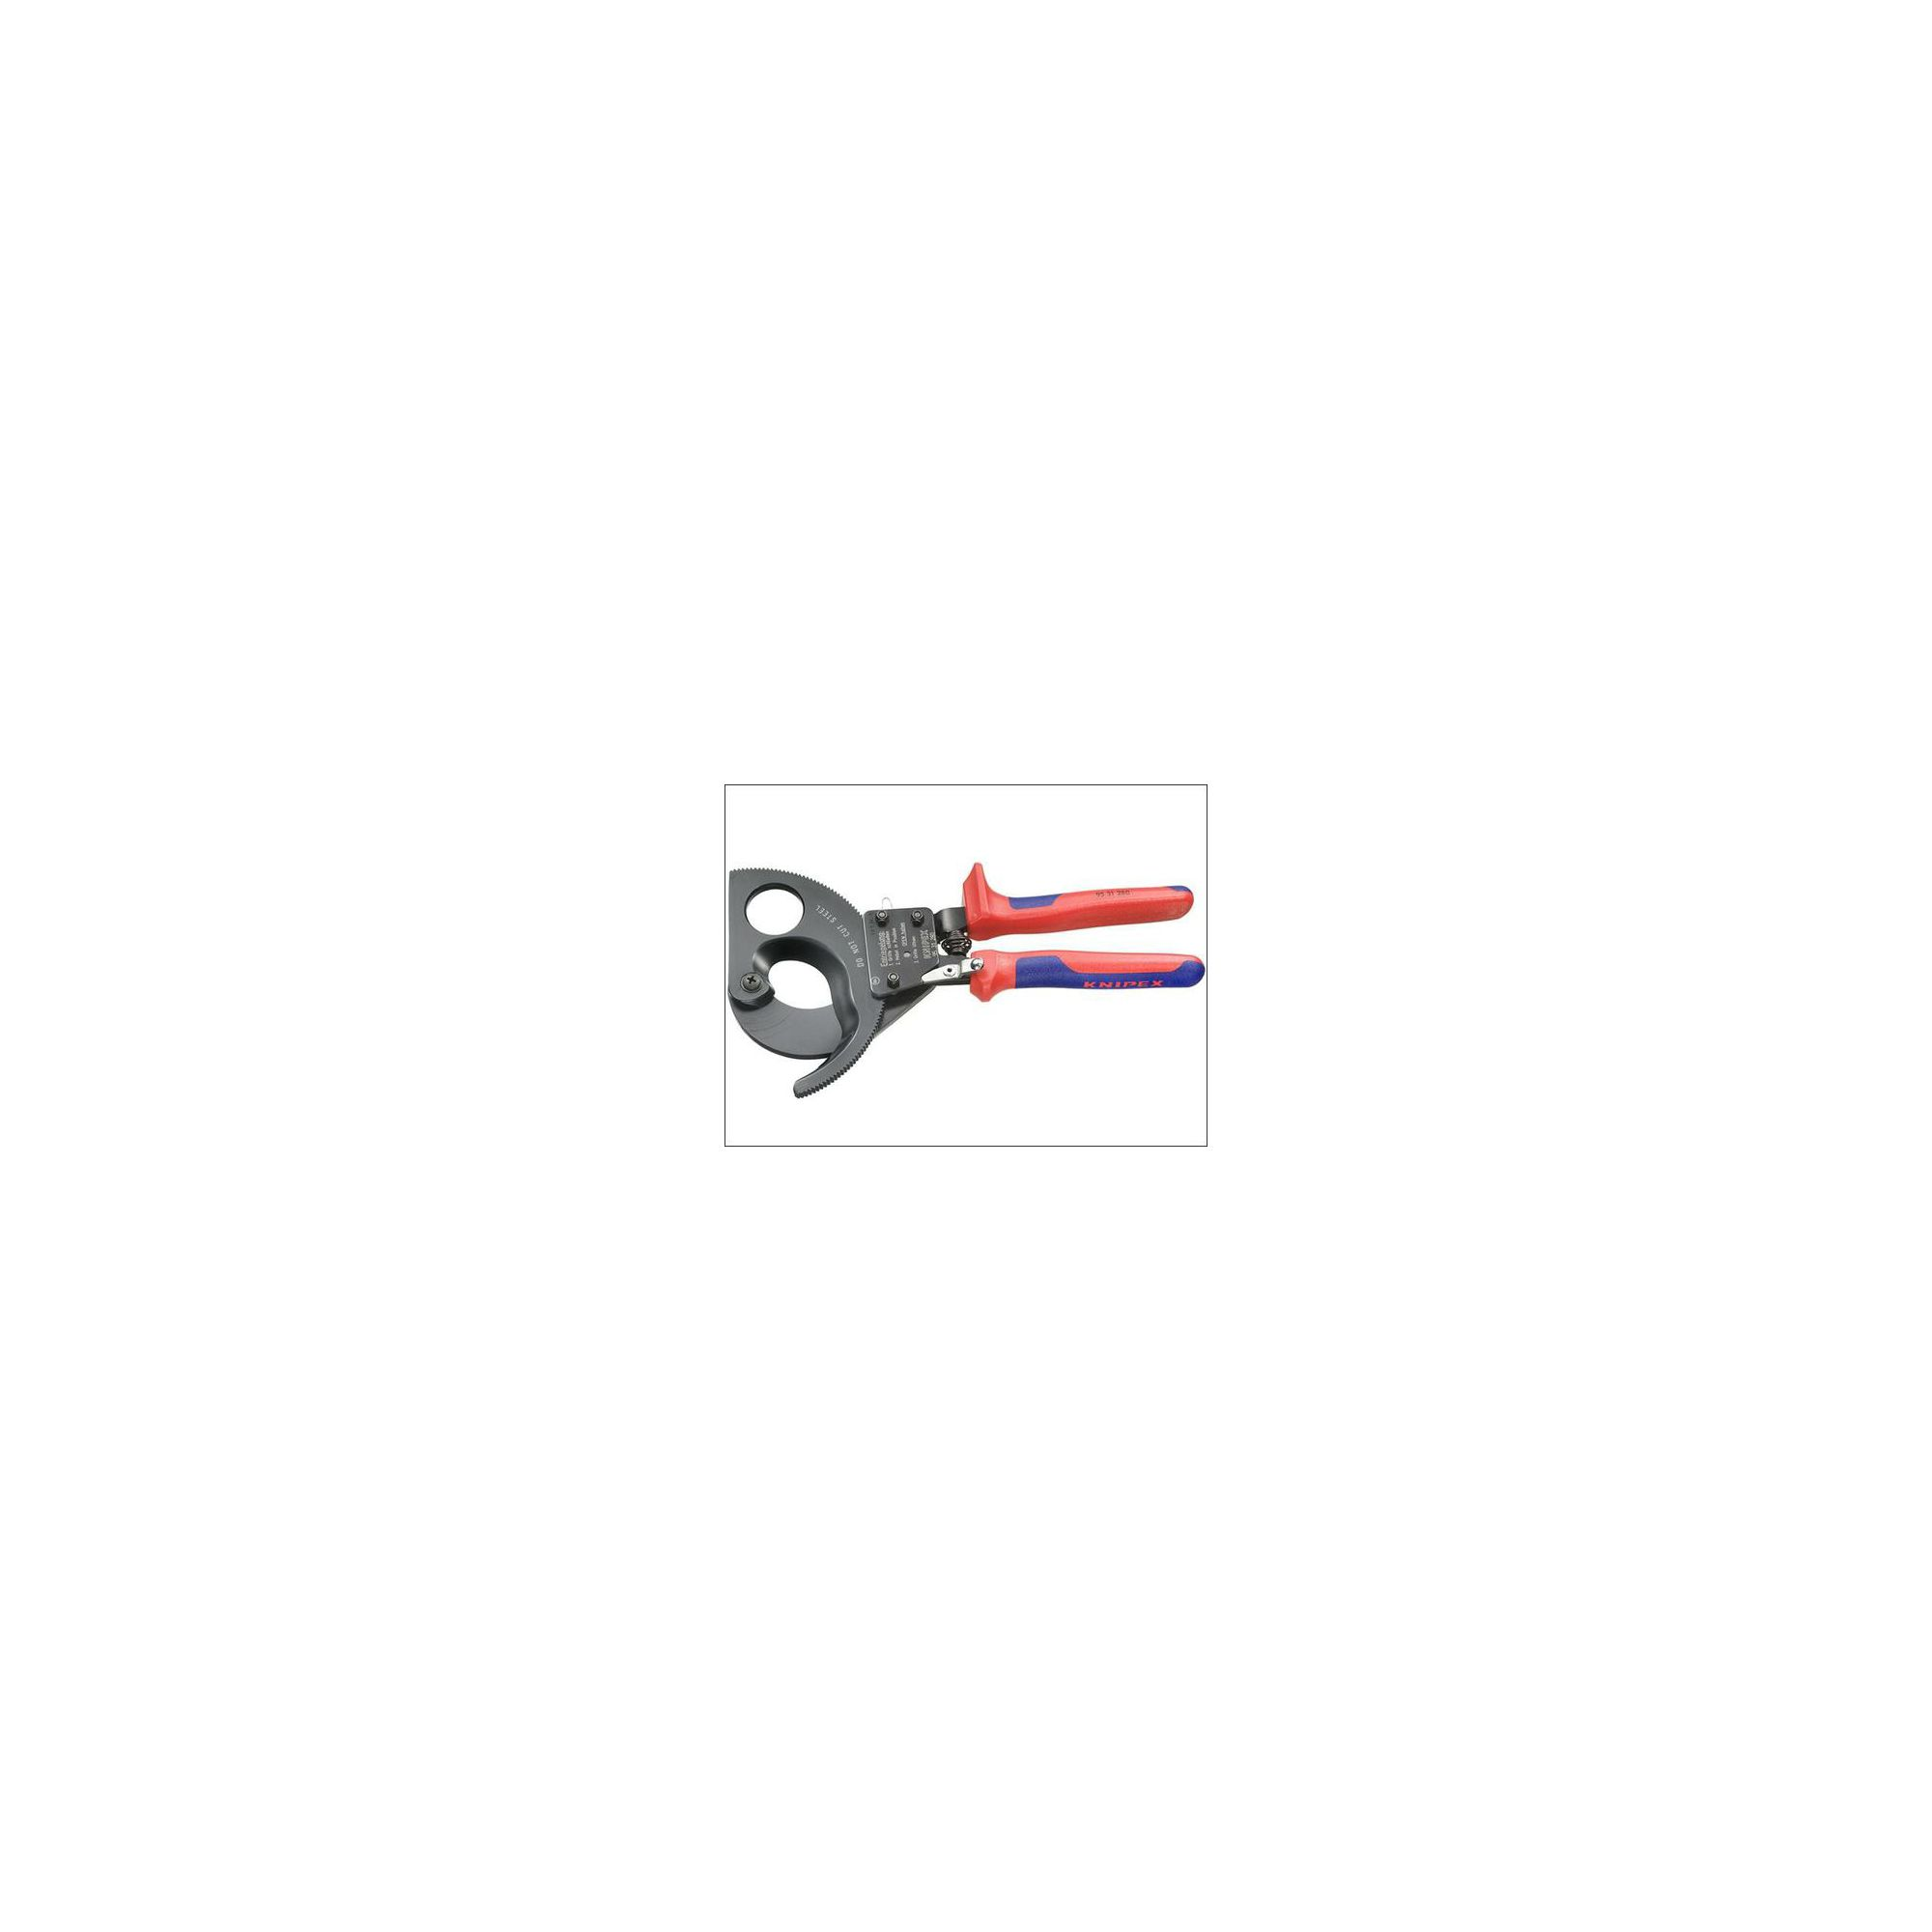 Knipex 9531280 Cable Shears Ratchet at Tescos Direct